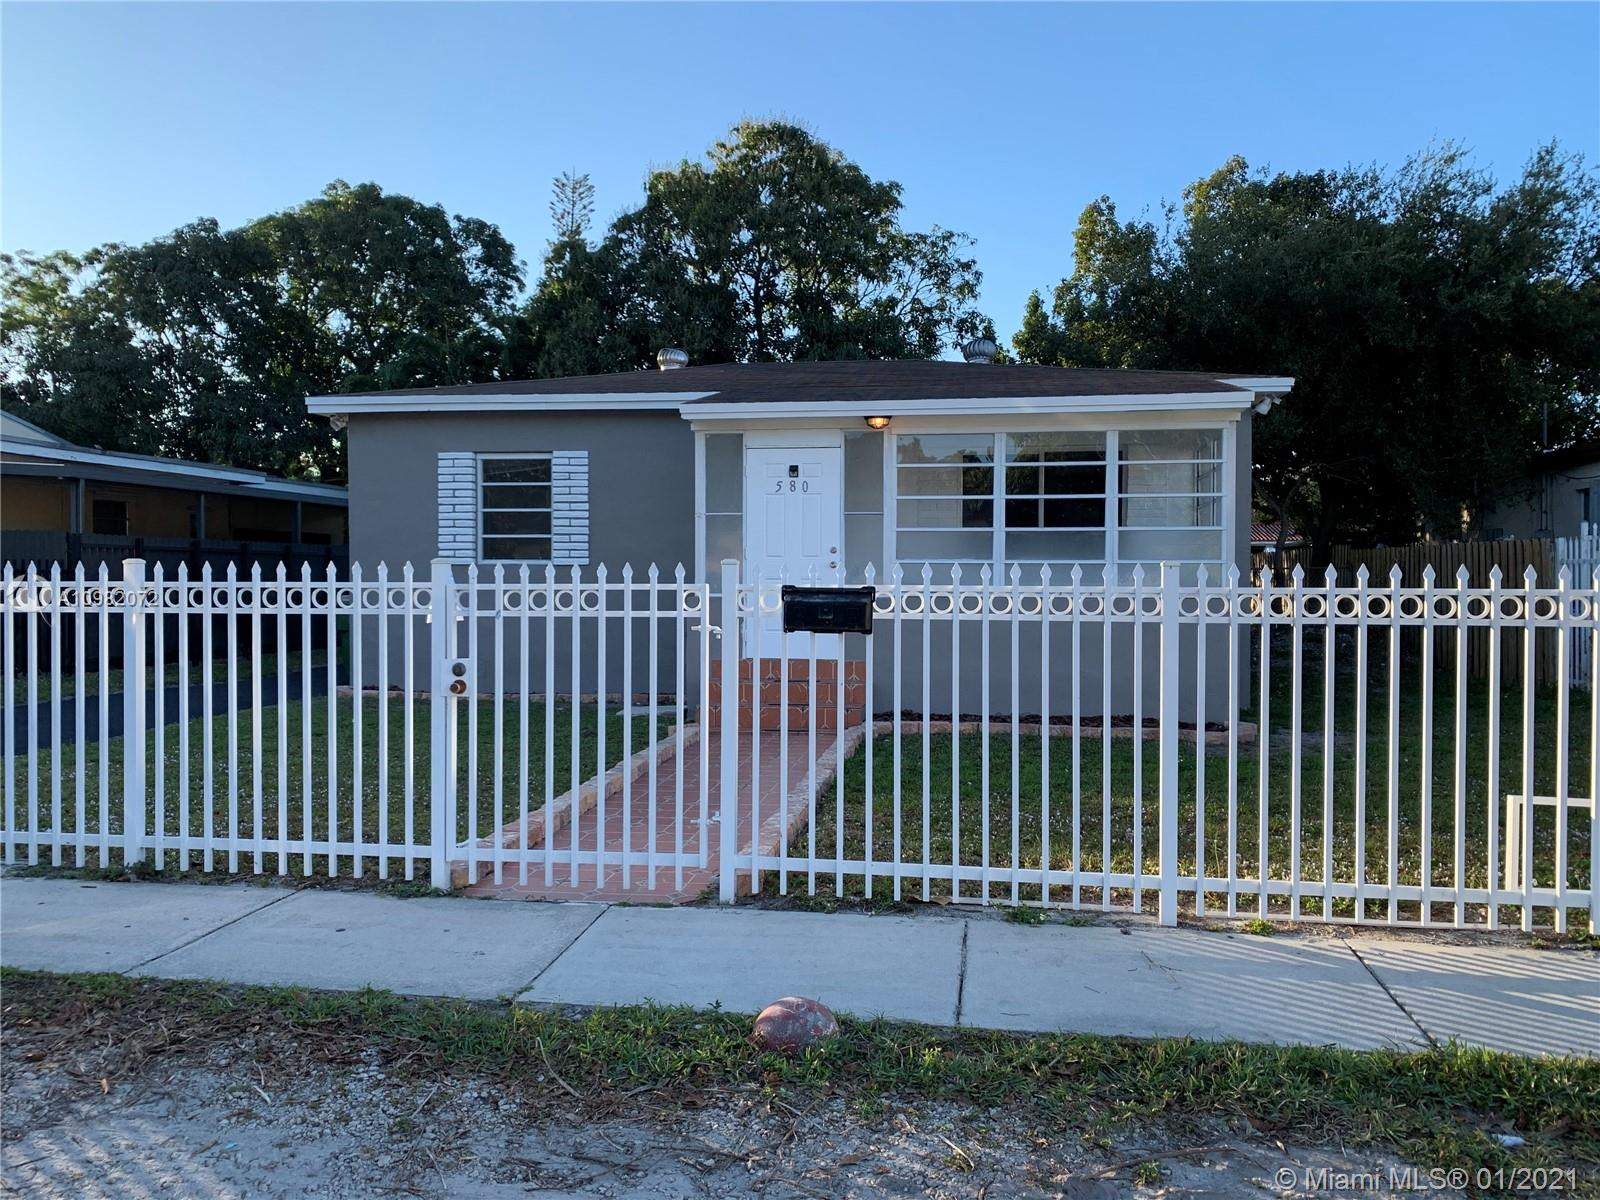 580 NW 133rd St, North Miami, Florida 33168, 2 Bedrooms Bedrooms, ,1 BathroomBathrooms,Residential,For Sale,580 NW 133rd St,A10982072